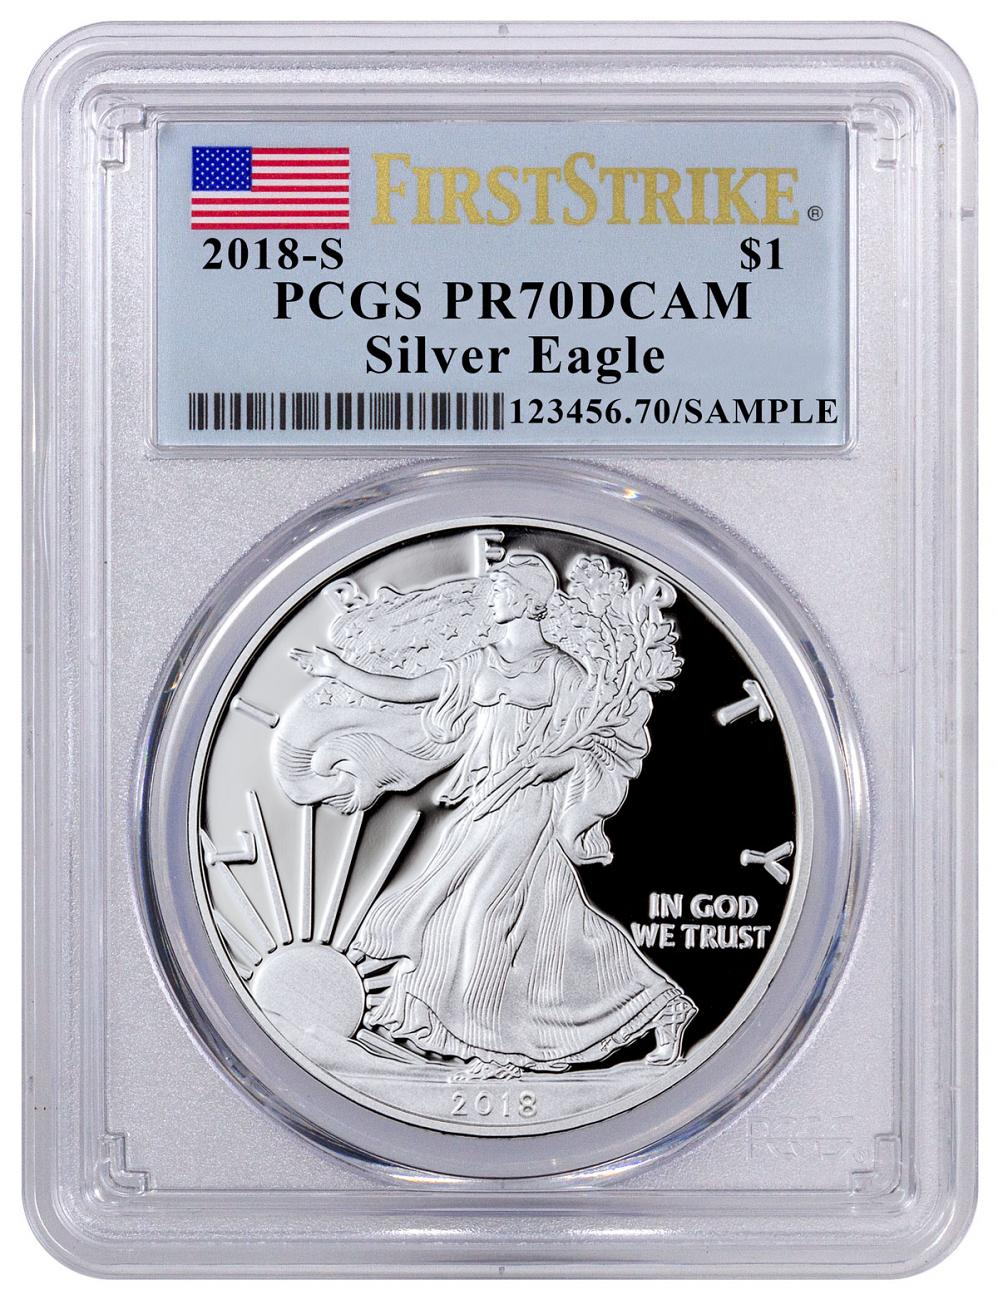 2018-S Proof American Silver Eagle PCGS PR70 DCAM FS Flag Label